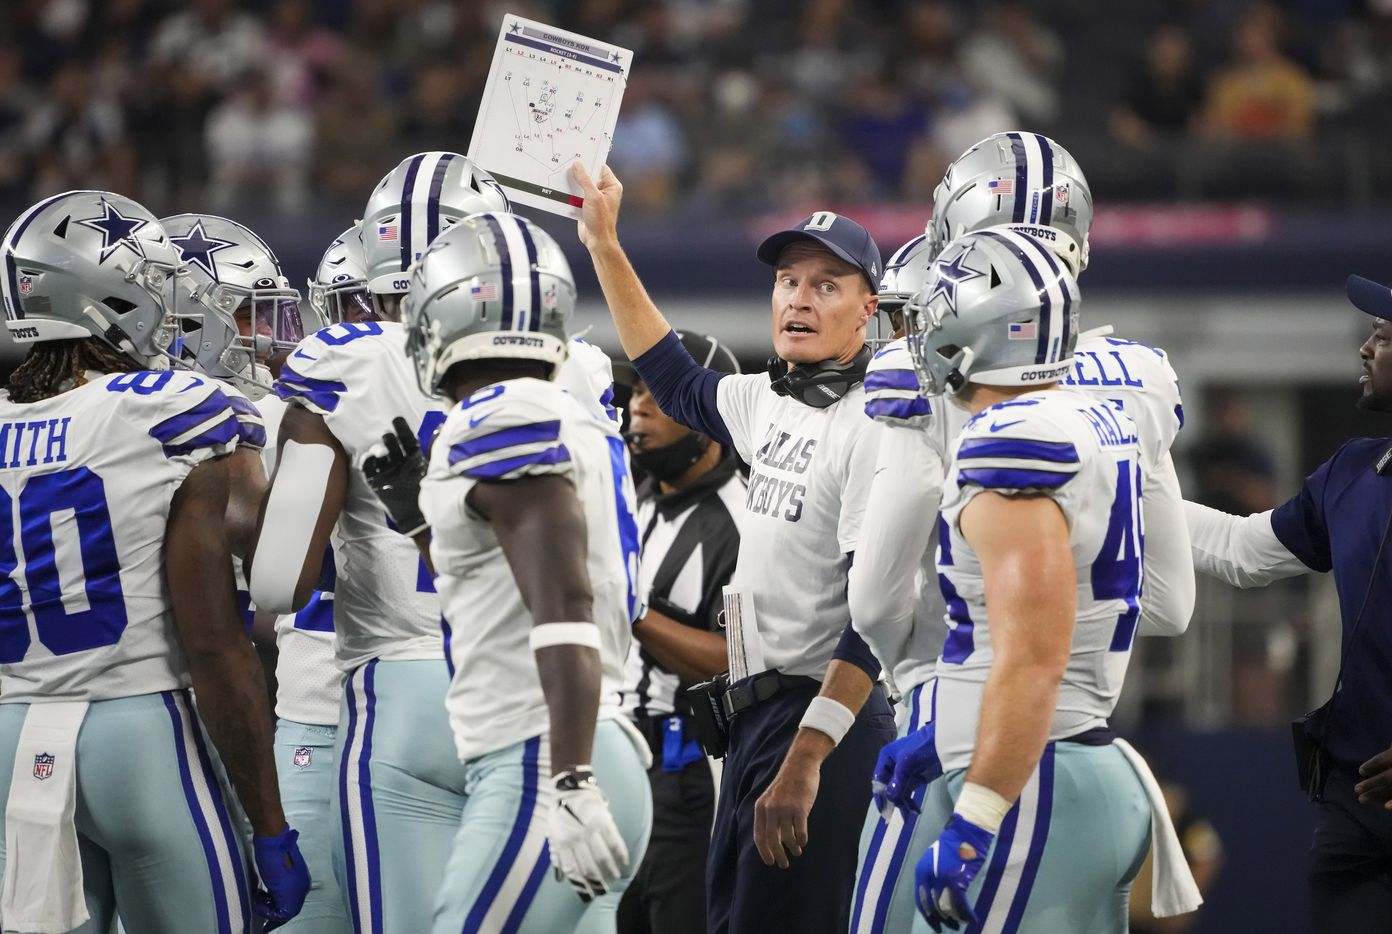 Dallas Cowboys special teams coordinator John Fassel send in a play during the first half of a preseason NFL football game against the Jacksonville Jaguars at AT&T Stadium on Sunday, Aug. 29, 2021, in Arlington. (Smiley N. Pool/The Dallas Morning News)